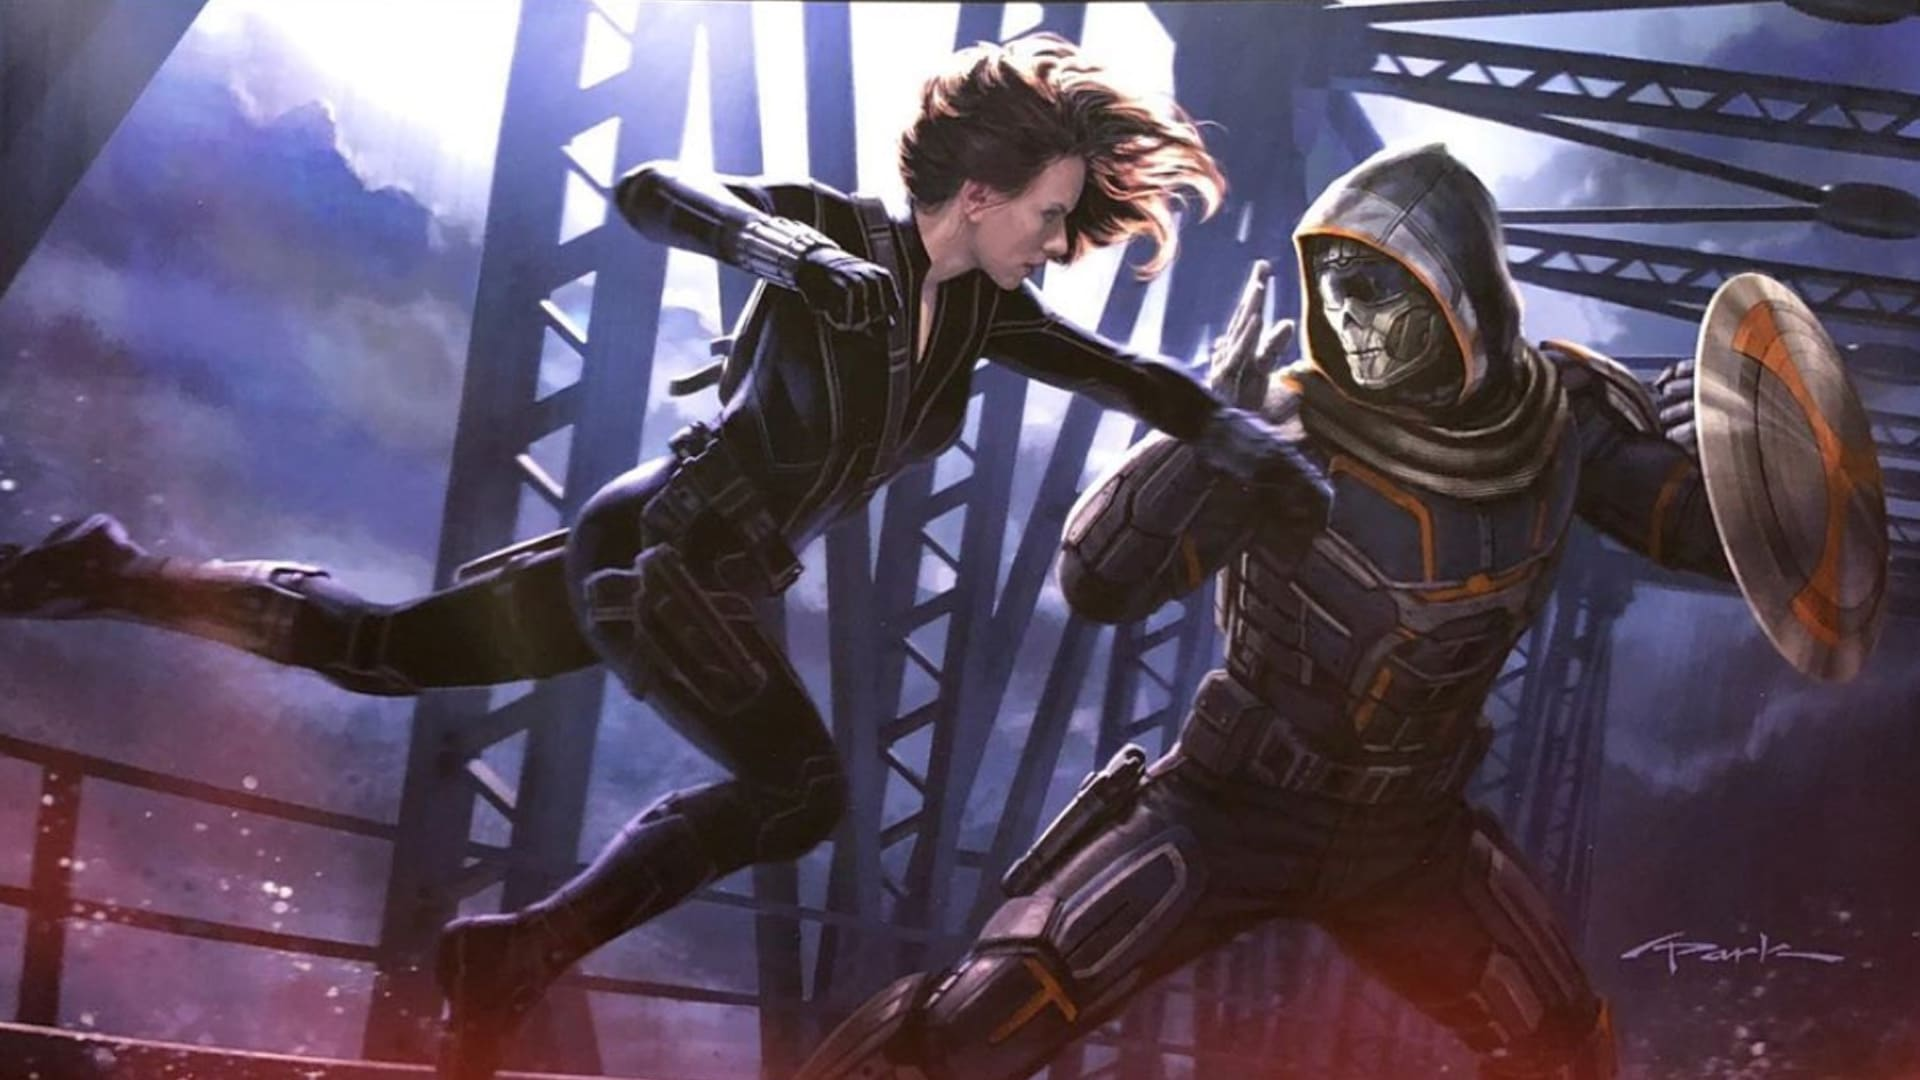 Is Rachel Weisz playing the taskmaster? Pic courtesy: geekytyrant.com